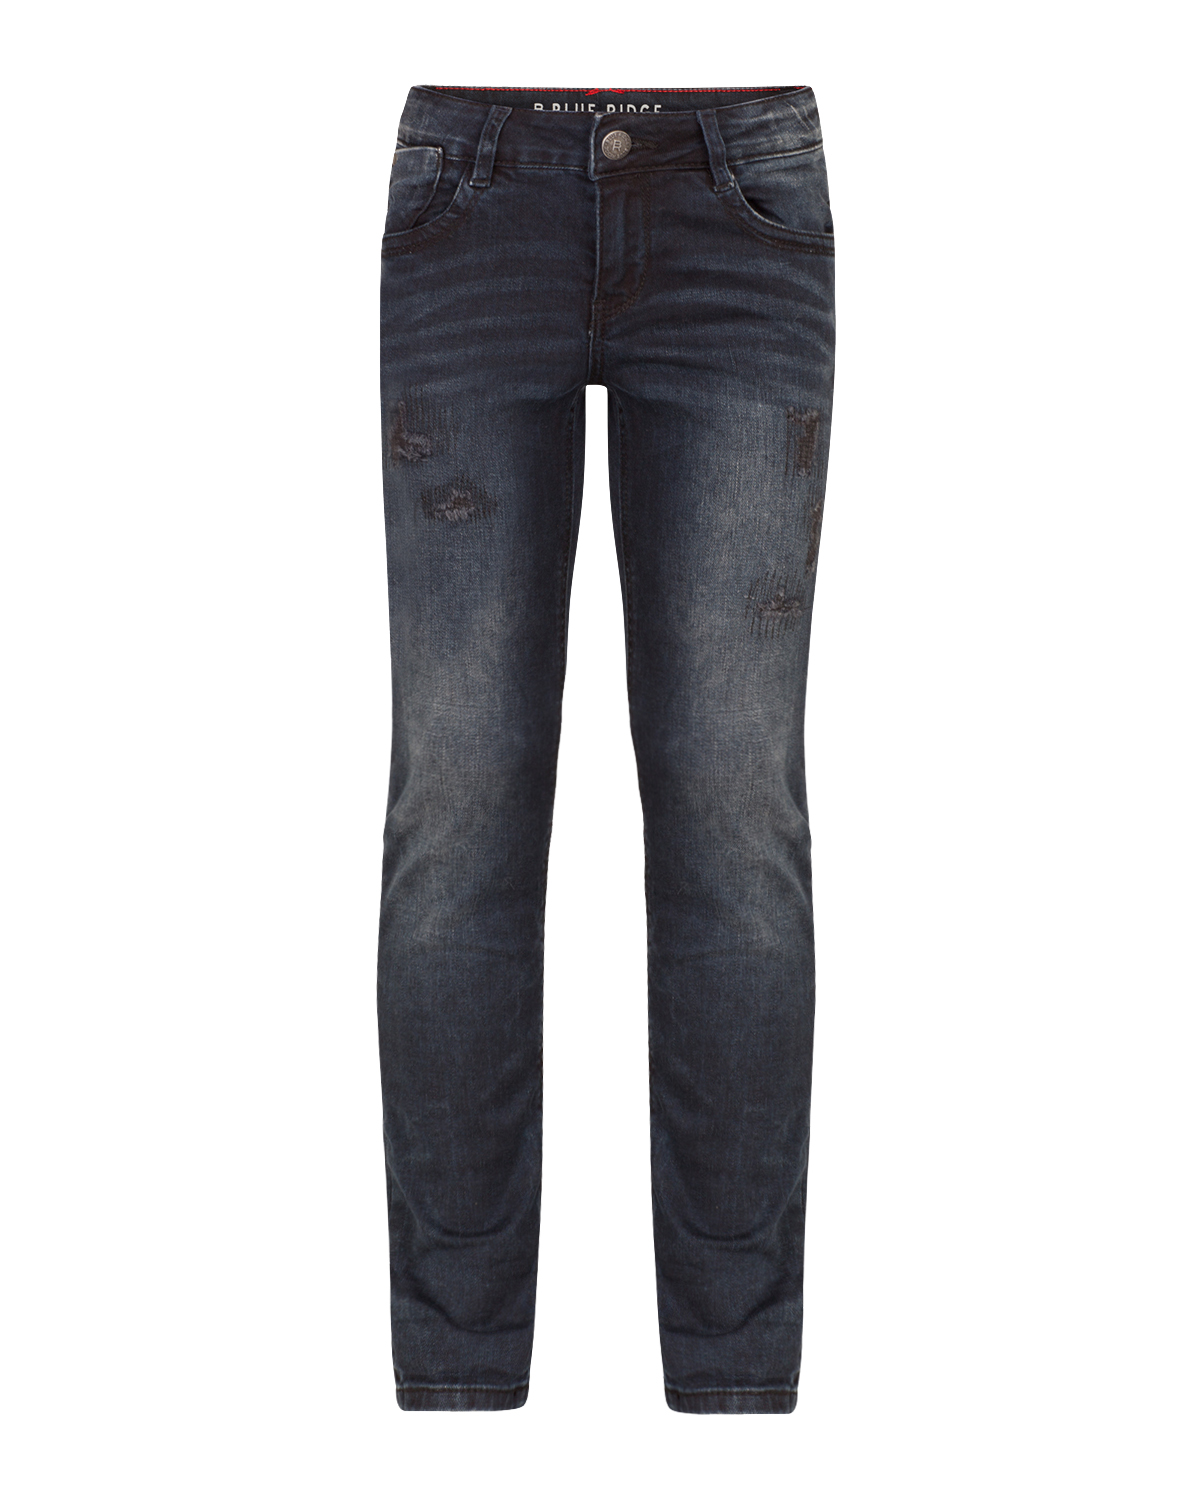 Meisjes skinny fit repair jeans